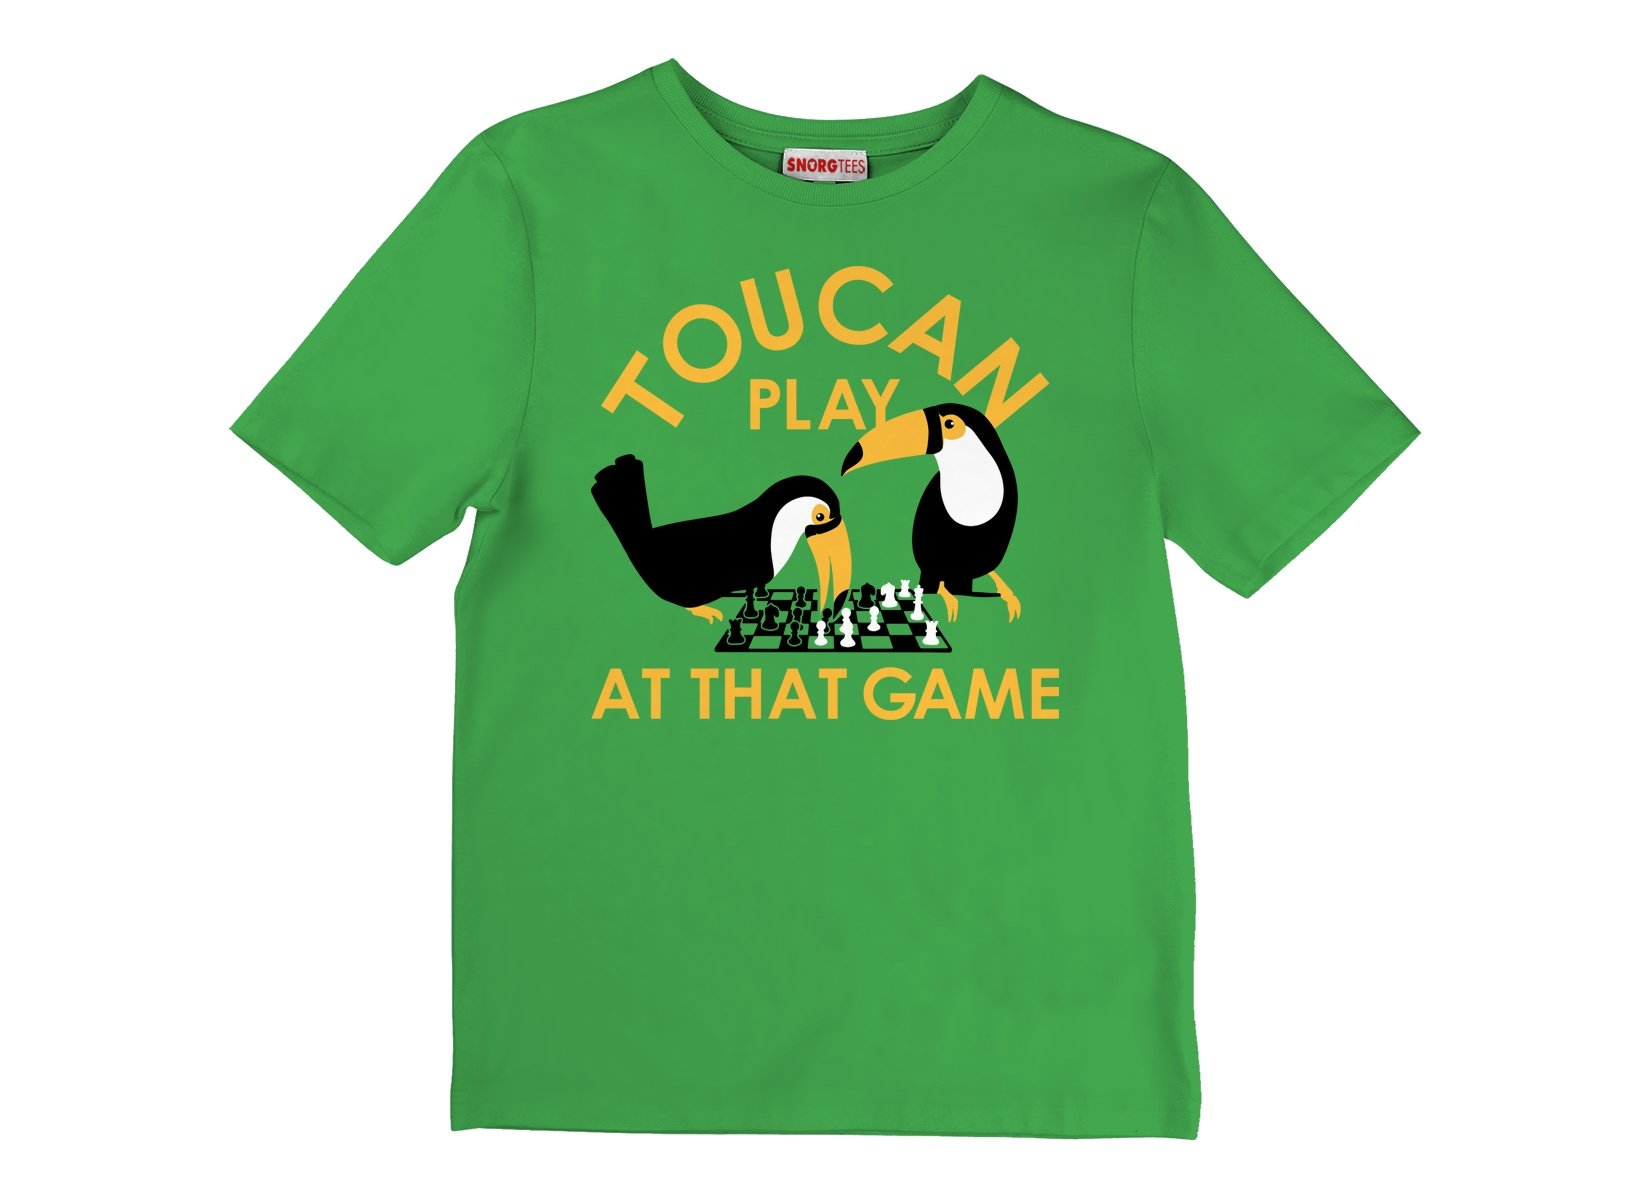 Toucan Play At That Game on Kids T-Shirt